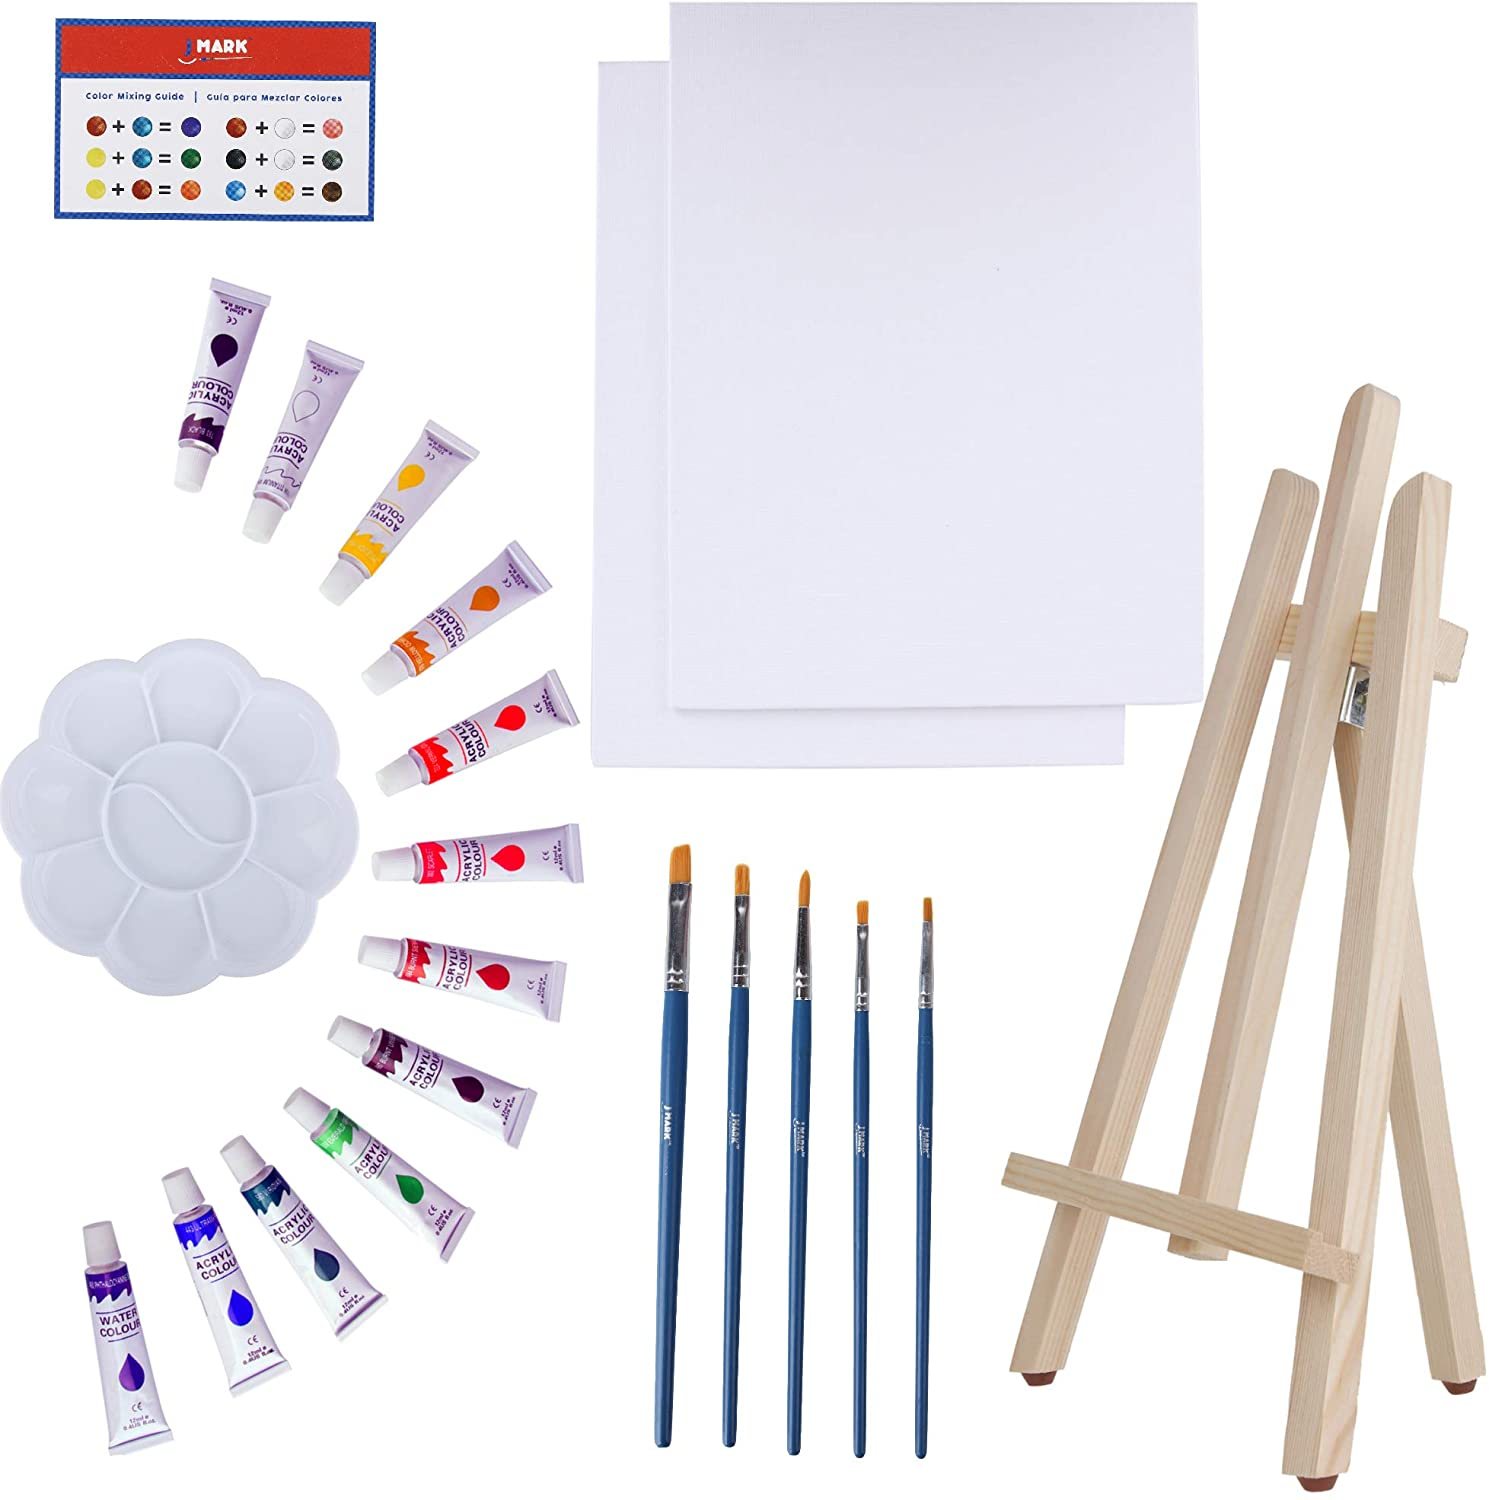 J Mark Canvas & Acrylic Painting Set